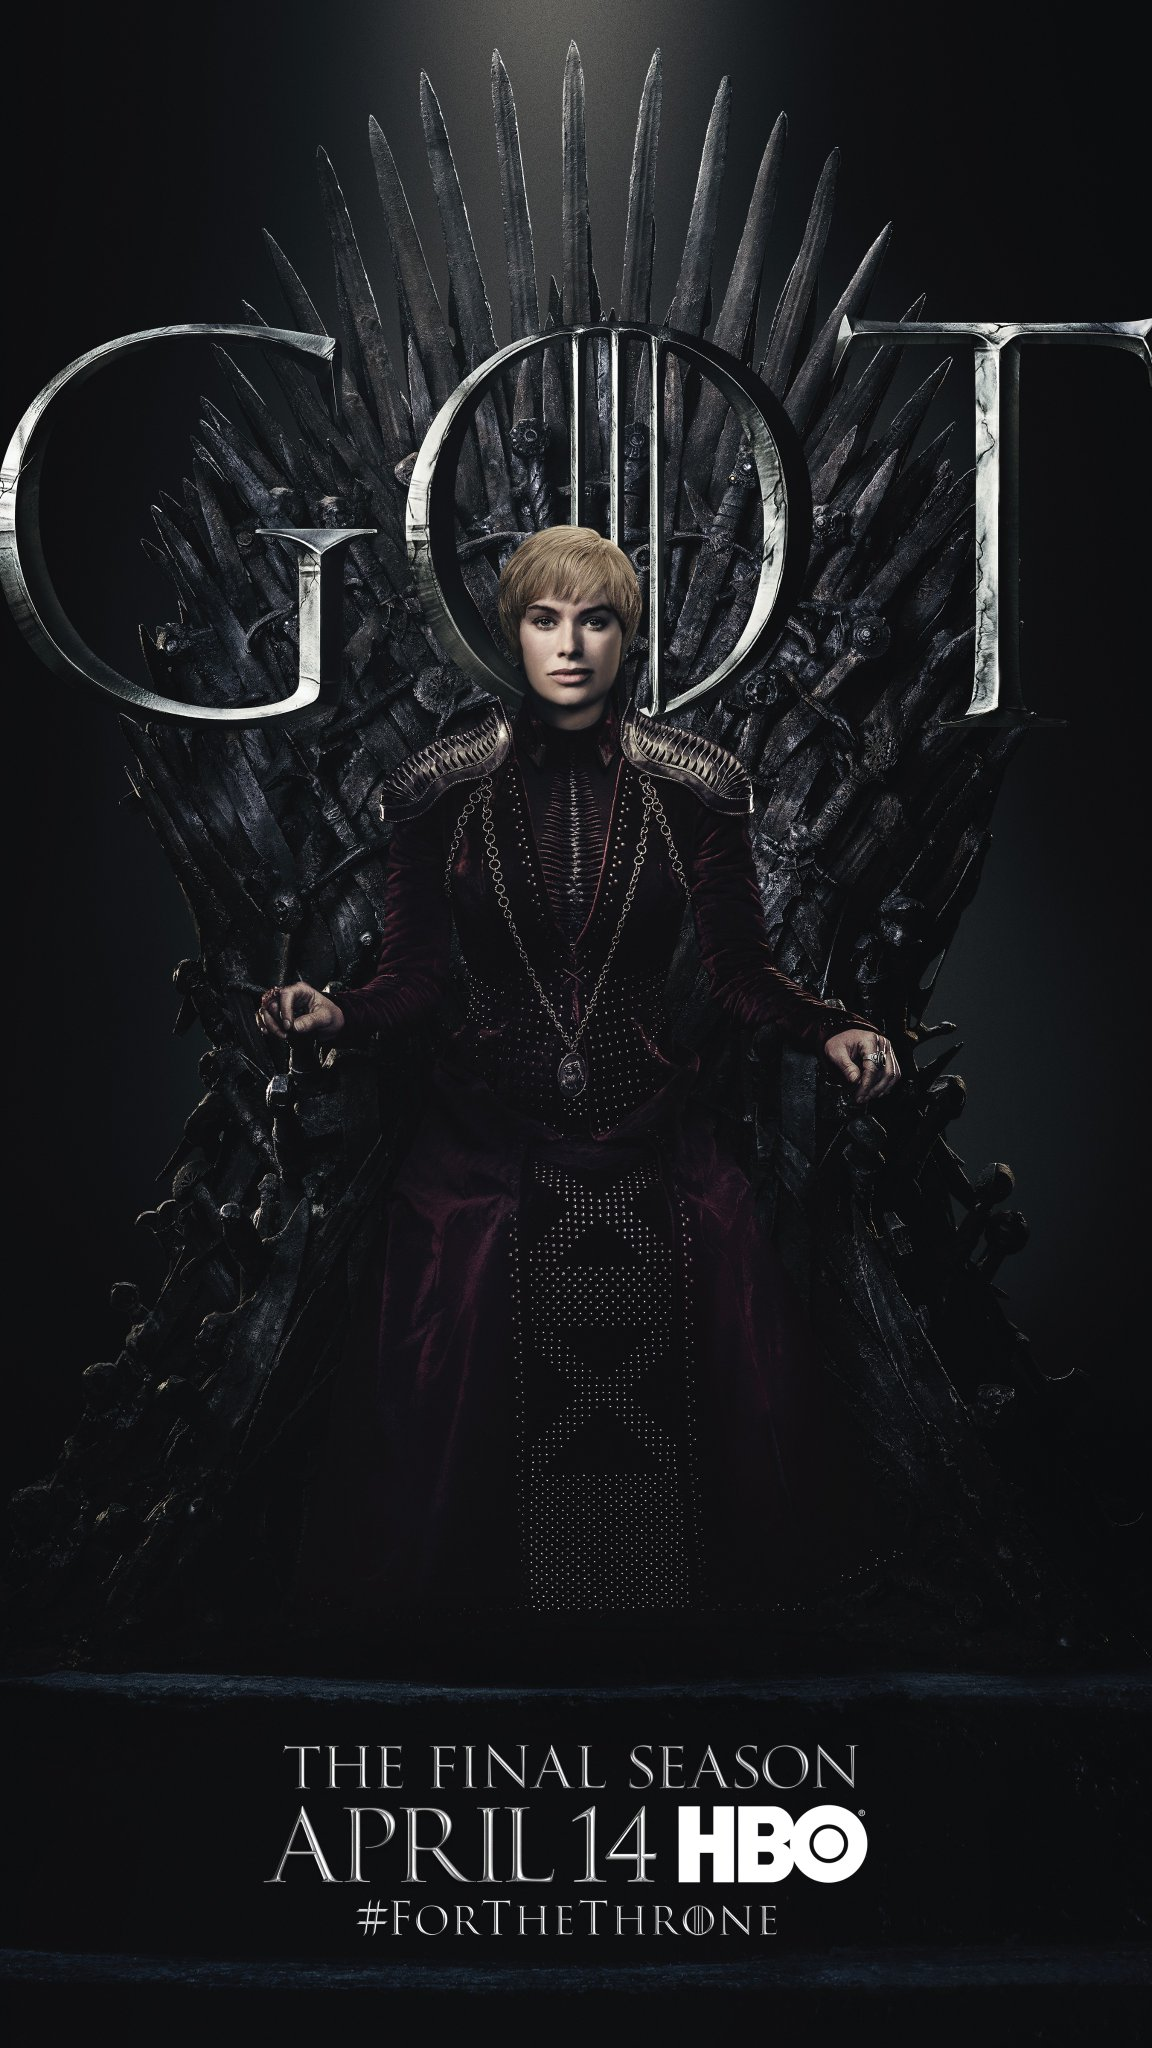 Iron Throne Poster - Cersei Lannister